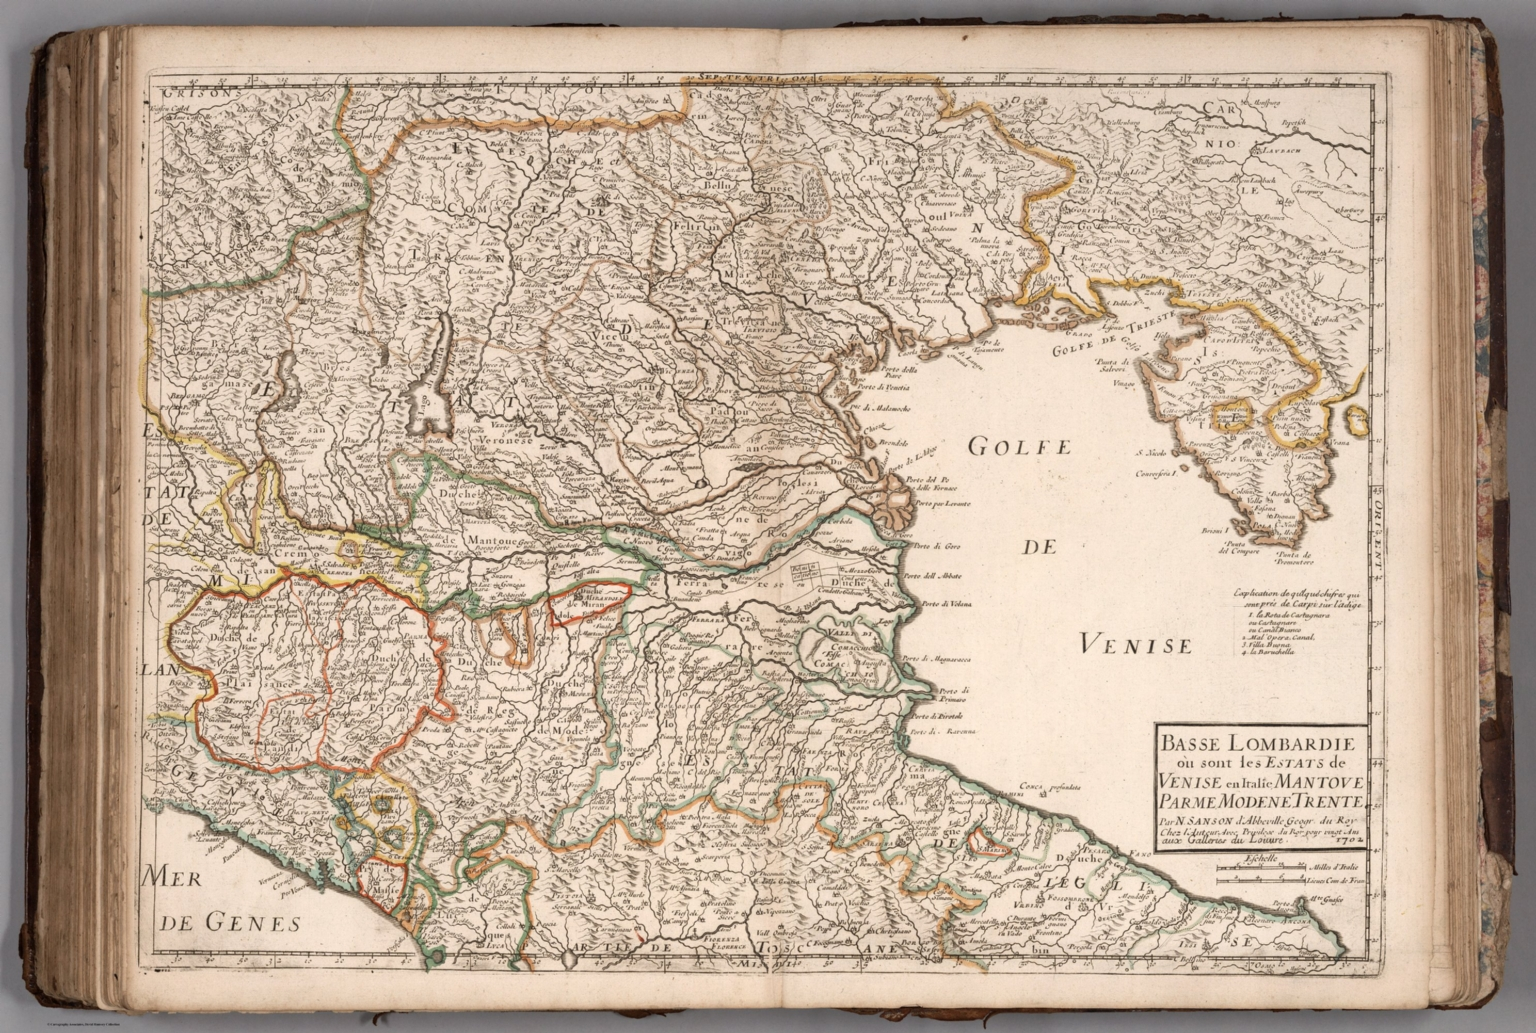 Lower Lombardy Italy David Rumsey Historical Map Collection